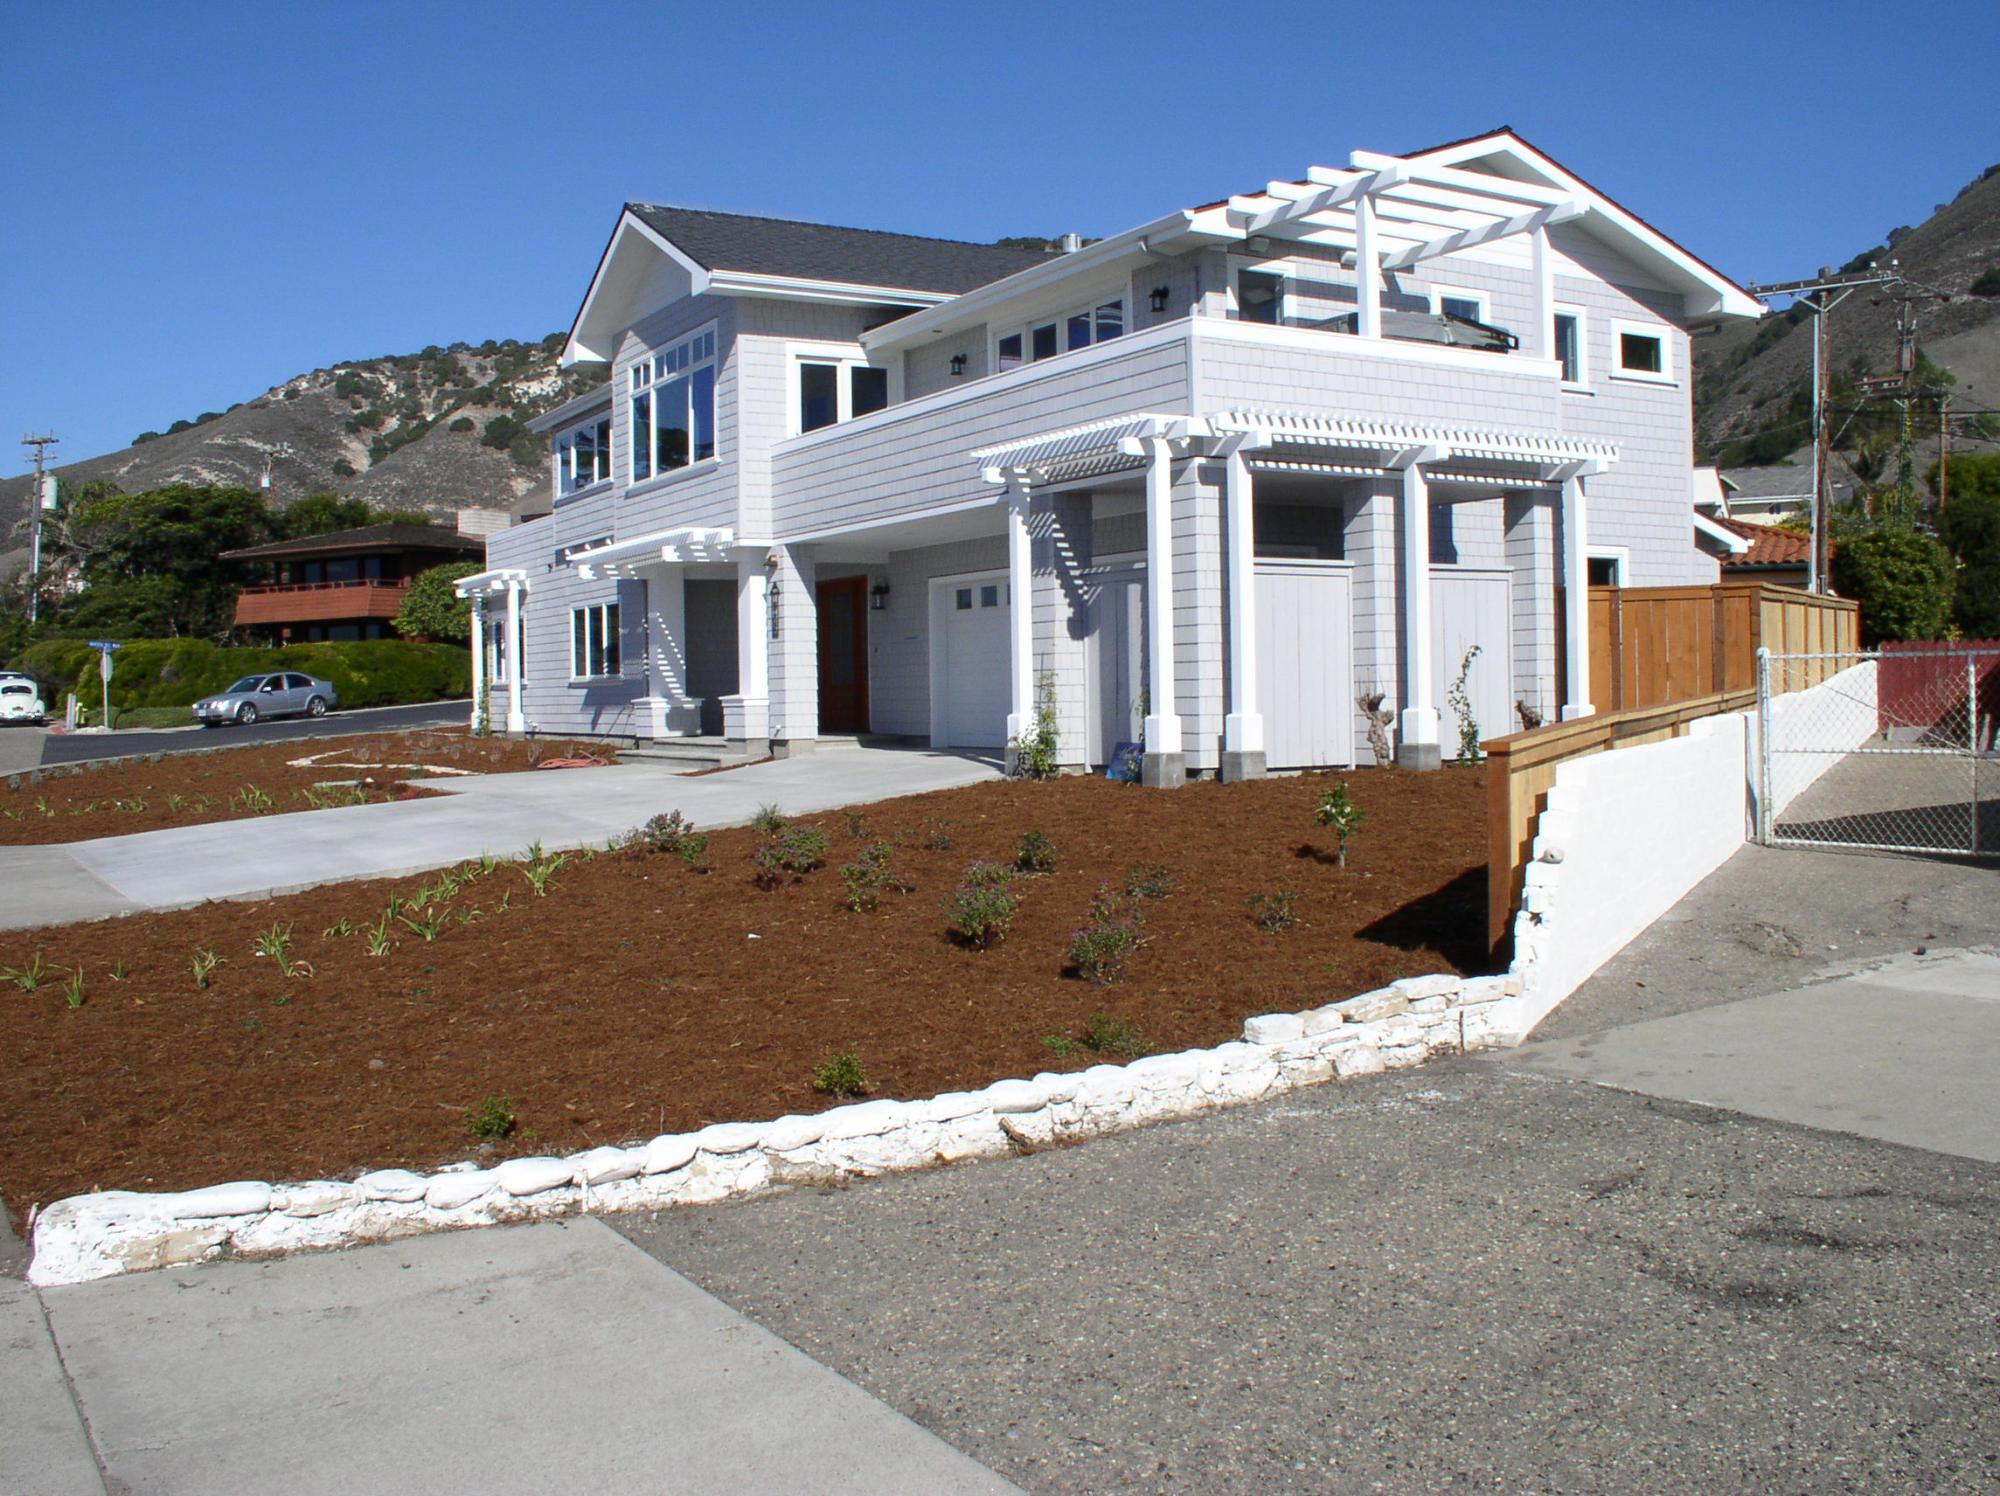 Architecture firm architectural services design firm for Architecture firms san luis obispo